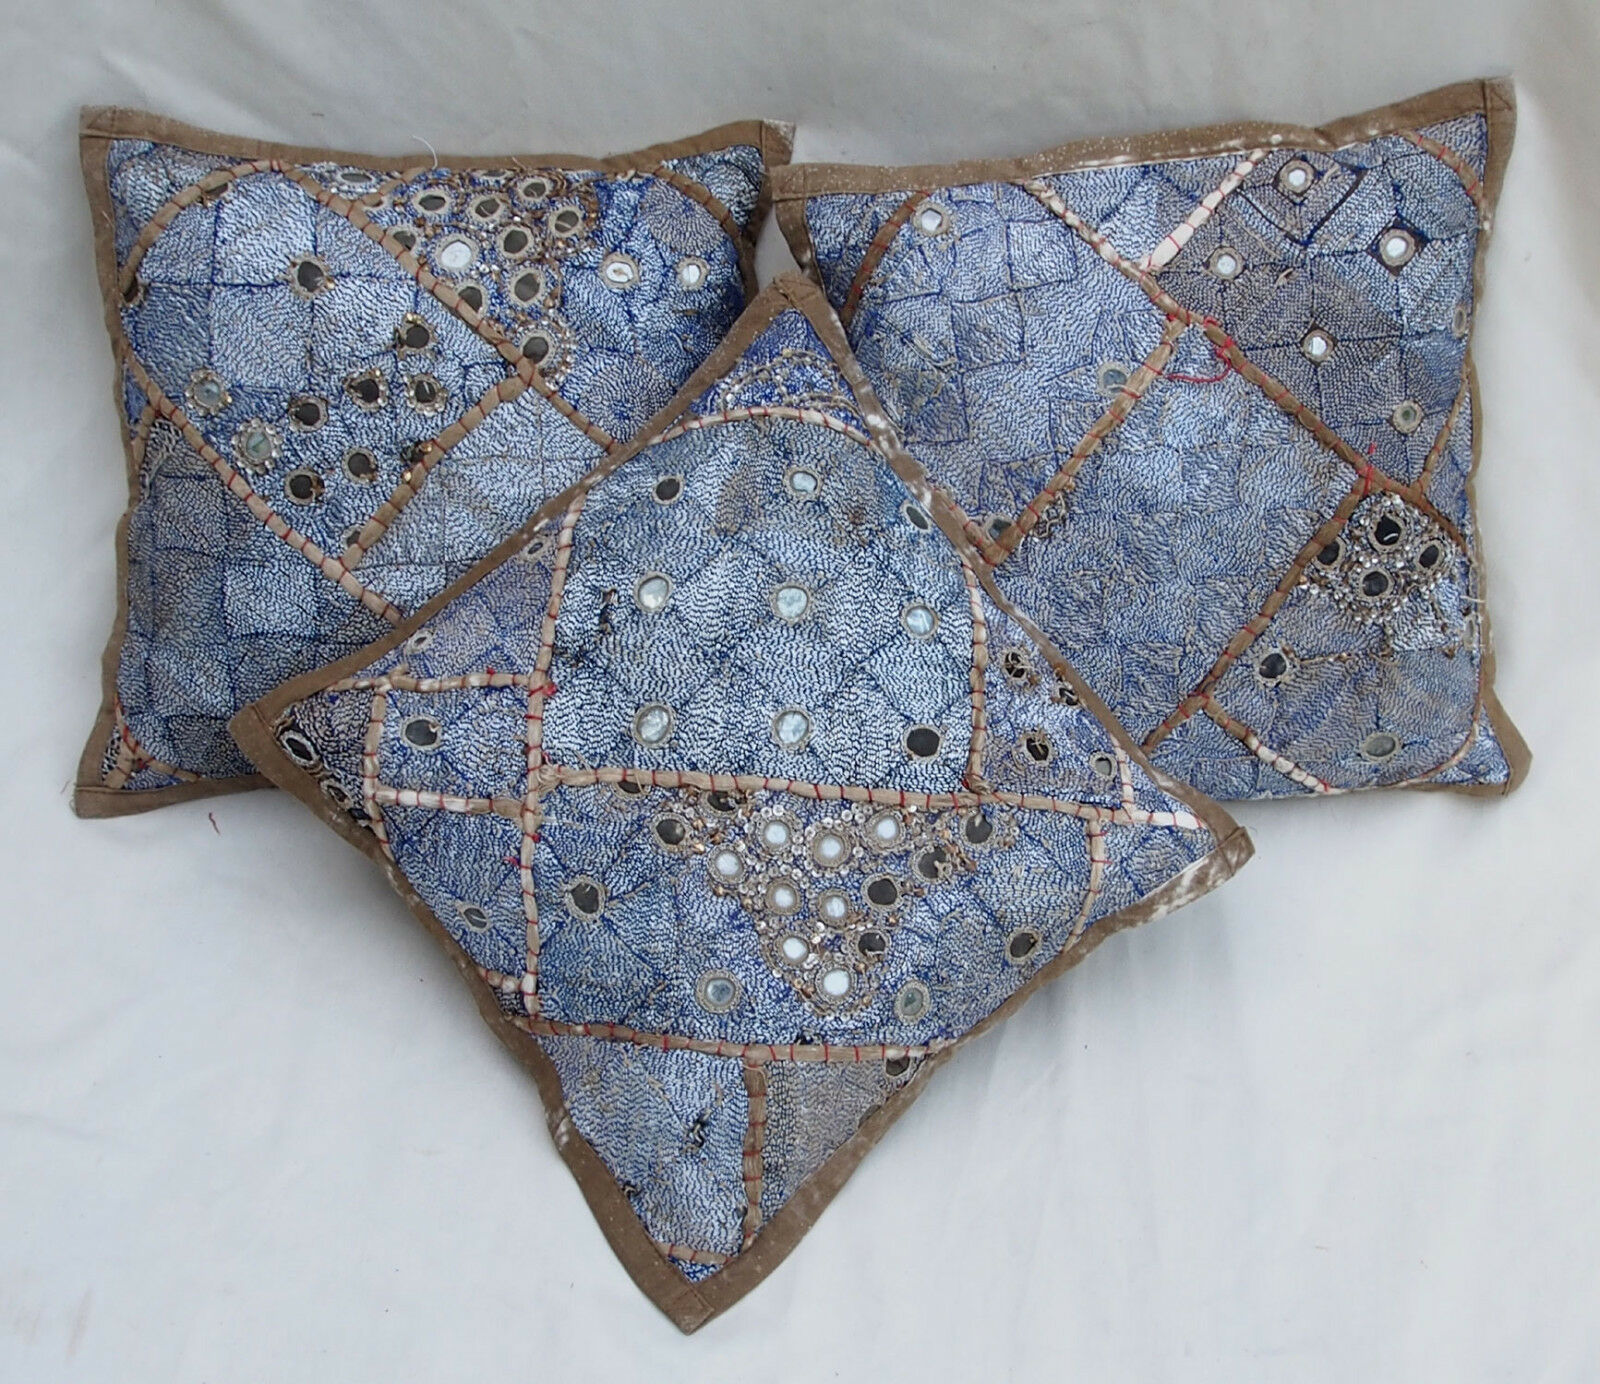 37x37cm Orient Patchwork Coussin Coussin Housse Embroiderouge Pillow Cushion Cover-F